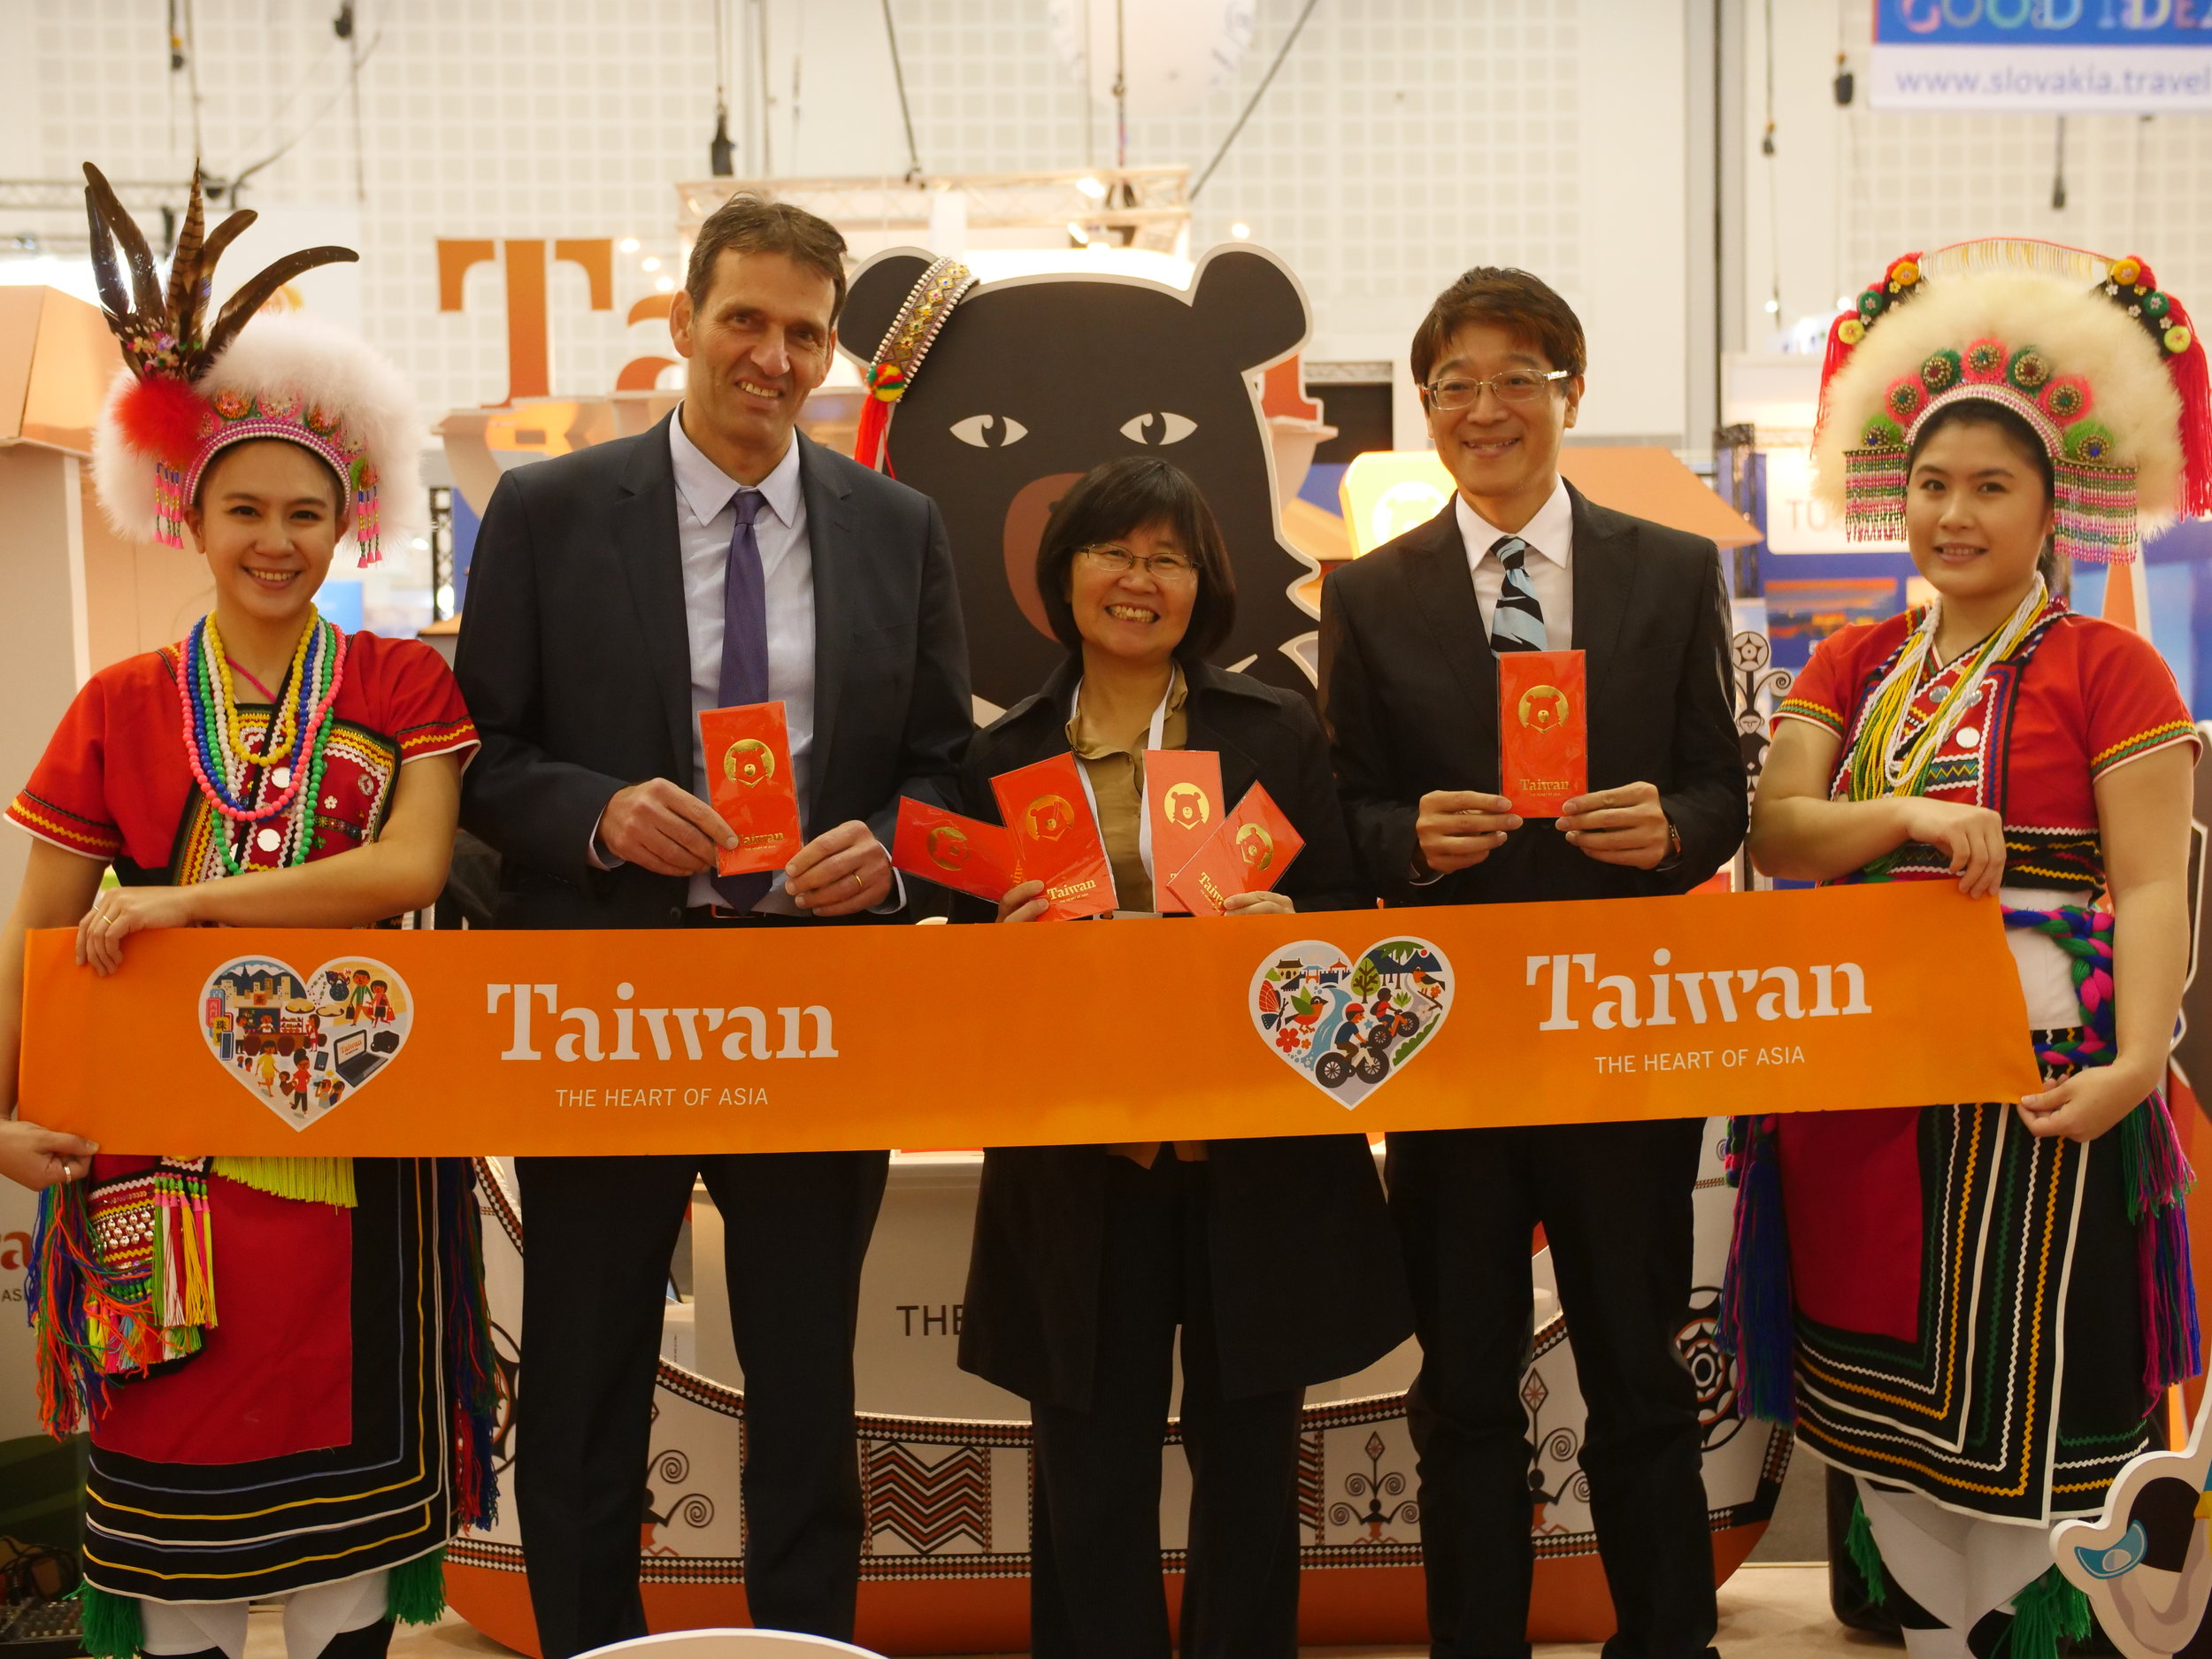 From left to right - Director General Amir Halevi of Israel's Ministry of Tourism, Deputy Director General Shu-Hui Chen of Taiwan Tourism Bureau, Director Trust H.J. Lin of the Taiwan Tourism Bureau's Singapore Office .JPG